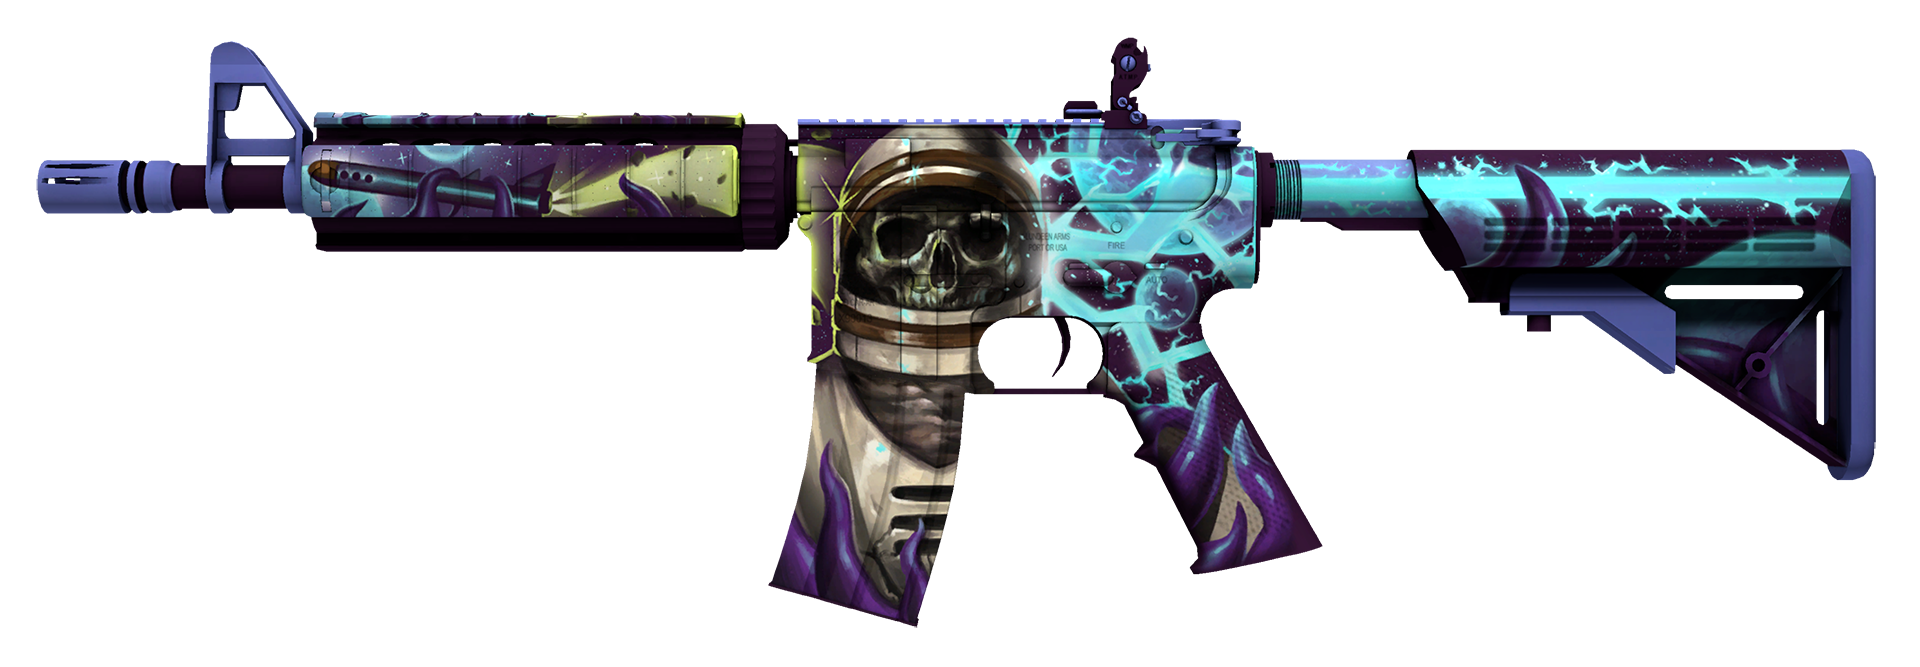 M4A4 Desolate Space Large Rendering | CSGO References | Space